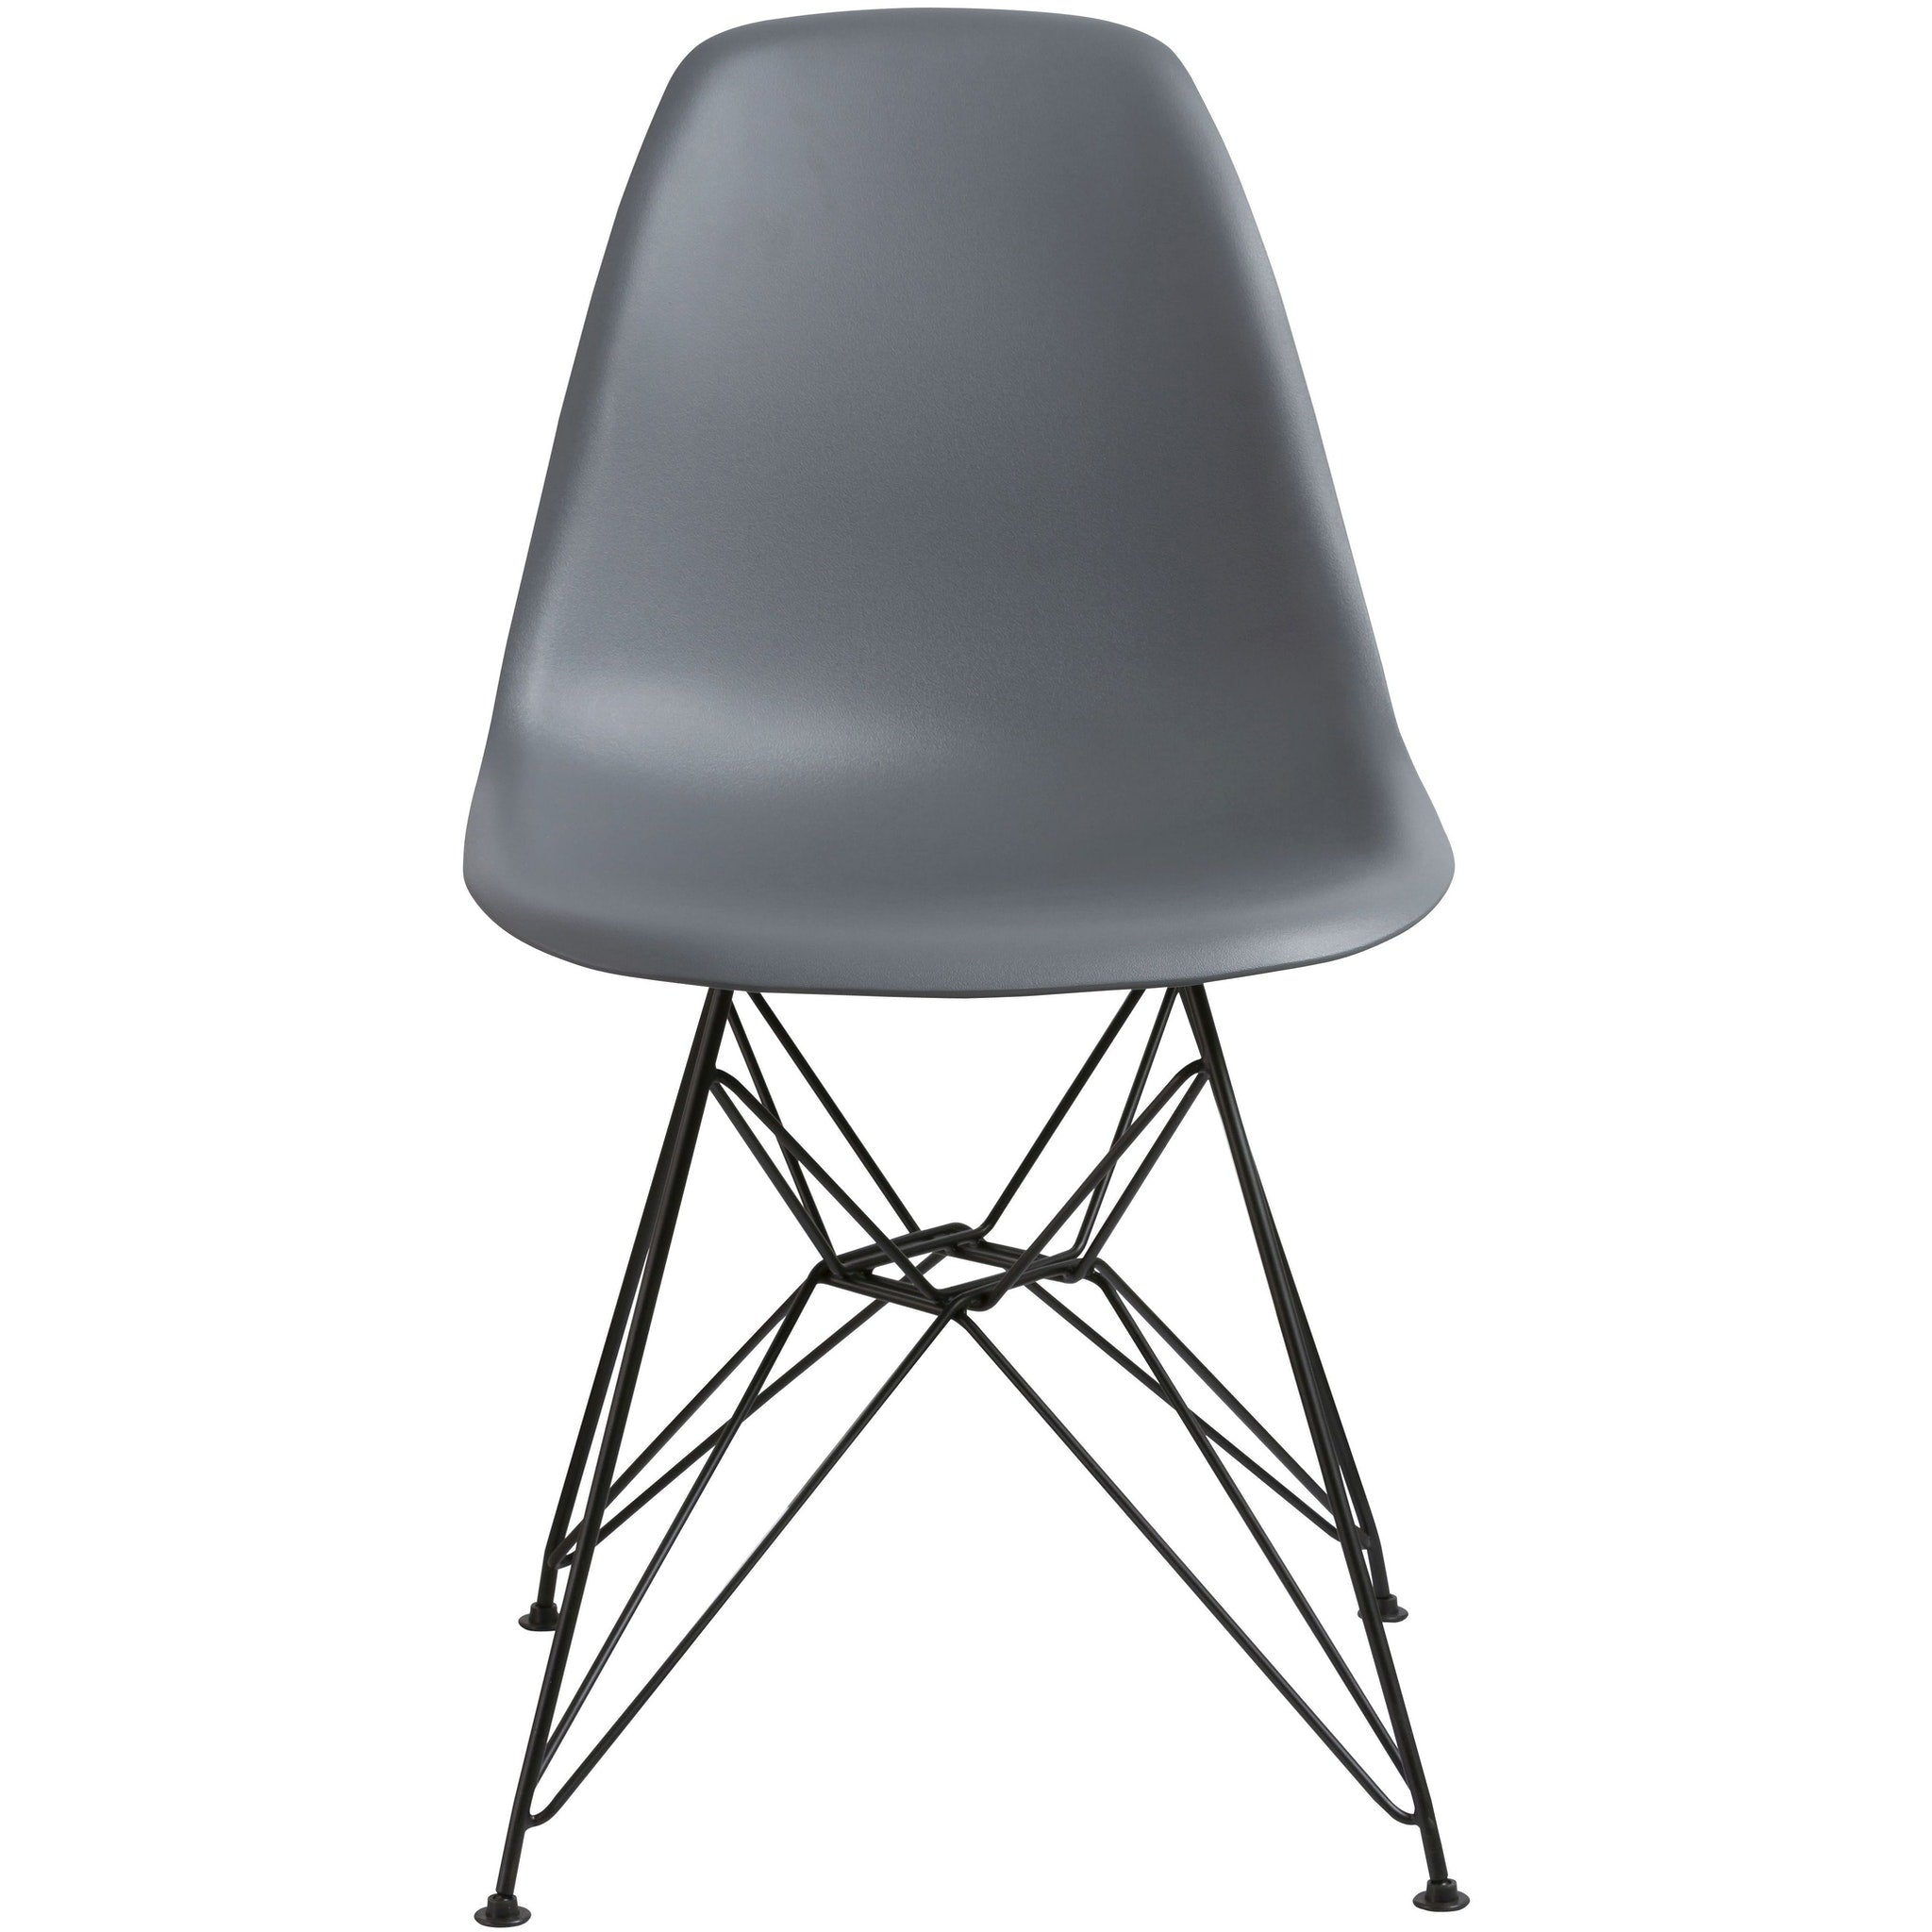 Crossroads Rostock Chair in Grey